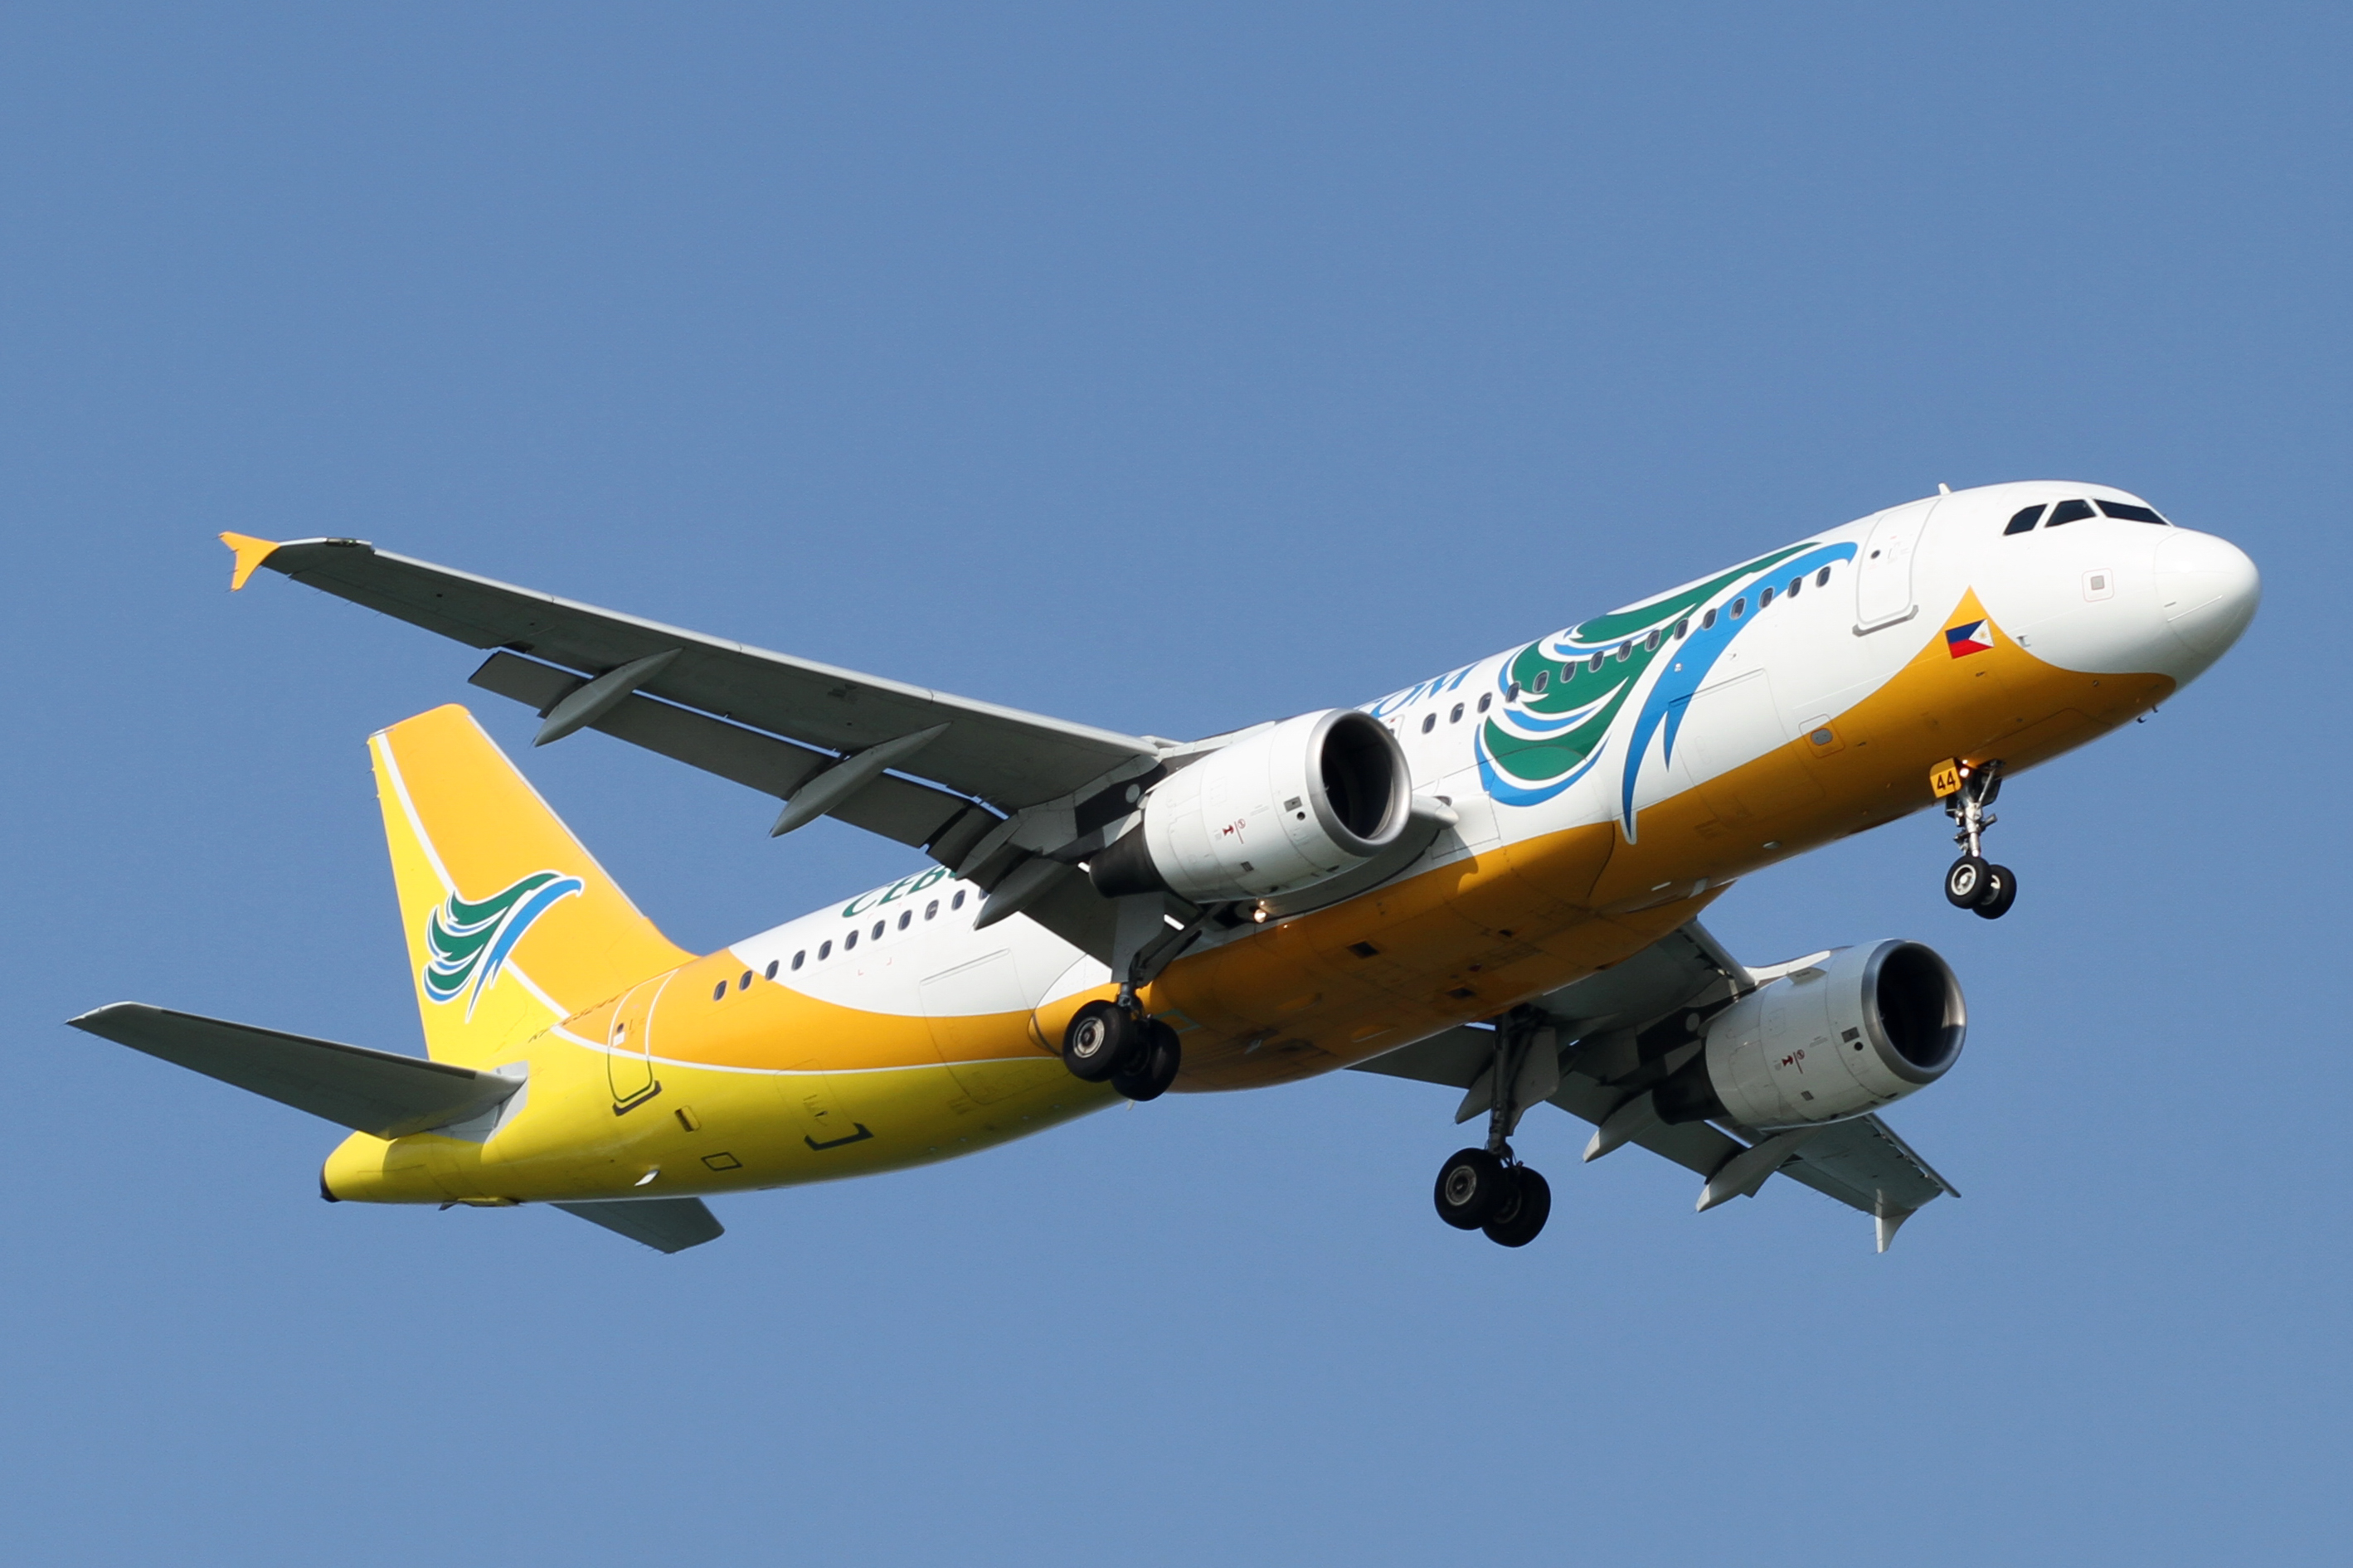 cebu pacific air Looking for cebu pacific air flights you're at the right place we are offering interesting deals on cebu pacific air tickets book your tickets today.